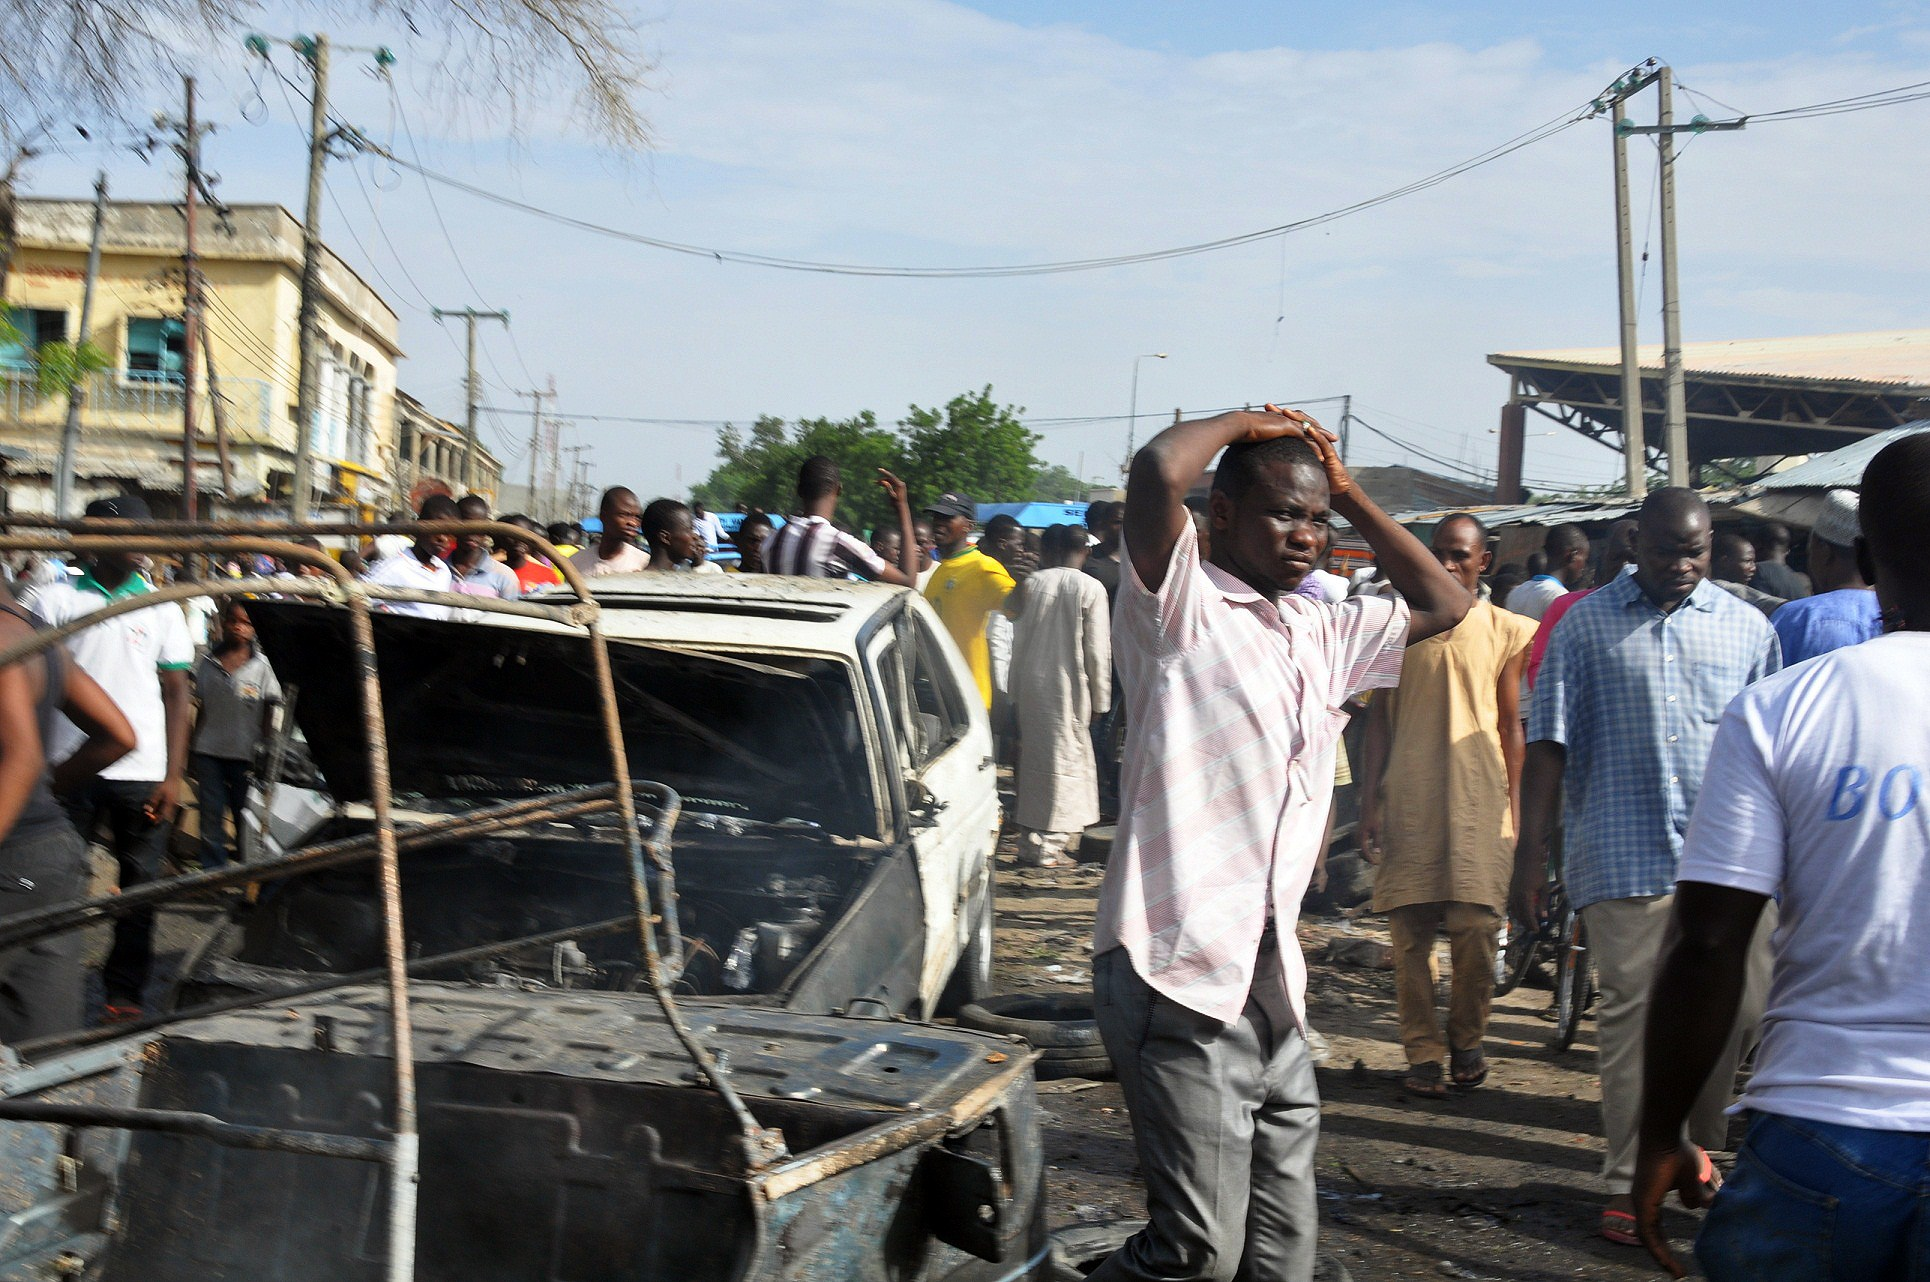 People gather near burned vehicles by the crowded Monday Market in Maiduguri, Nigeria, on July 1, 2014